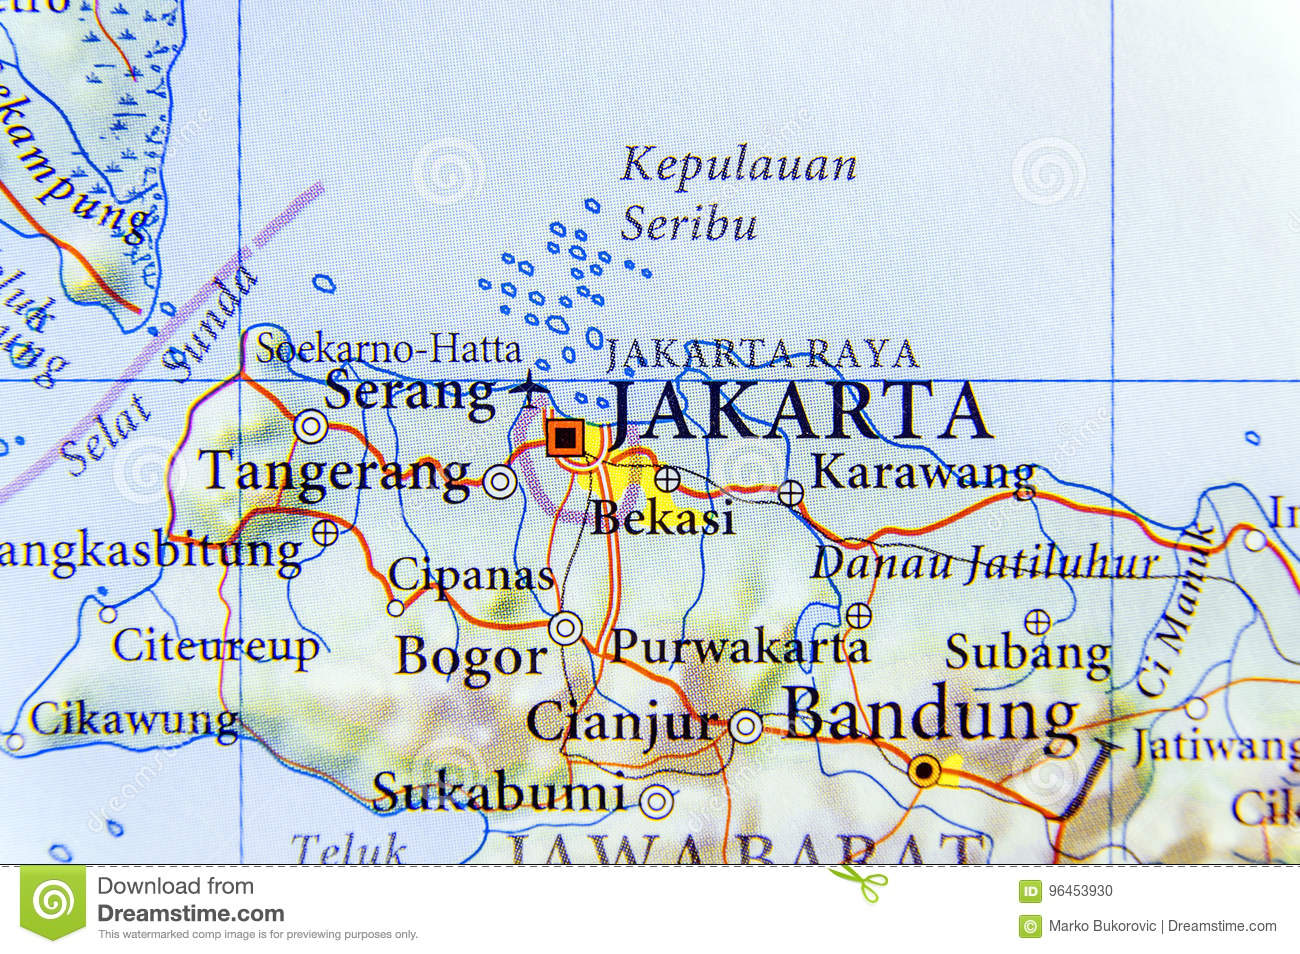 Geographic Map Of Indonesia Capital City Jakarta Stock Photo Image Of Target Tourism 96453930